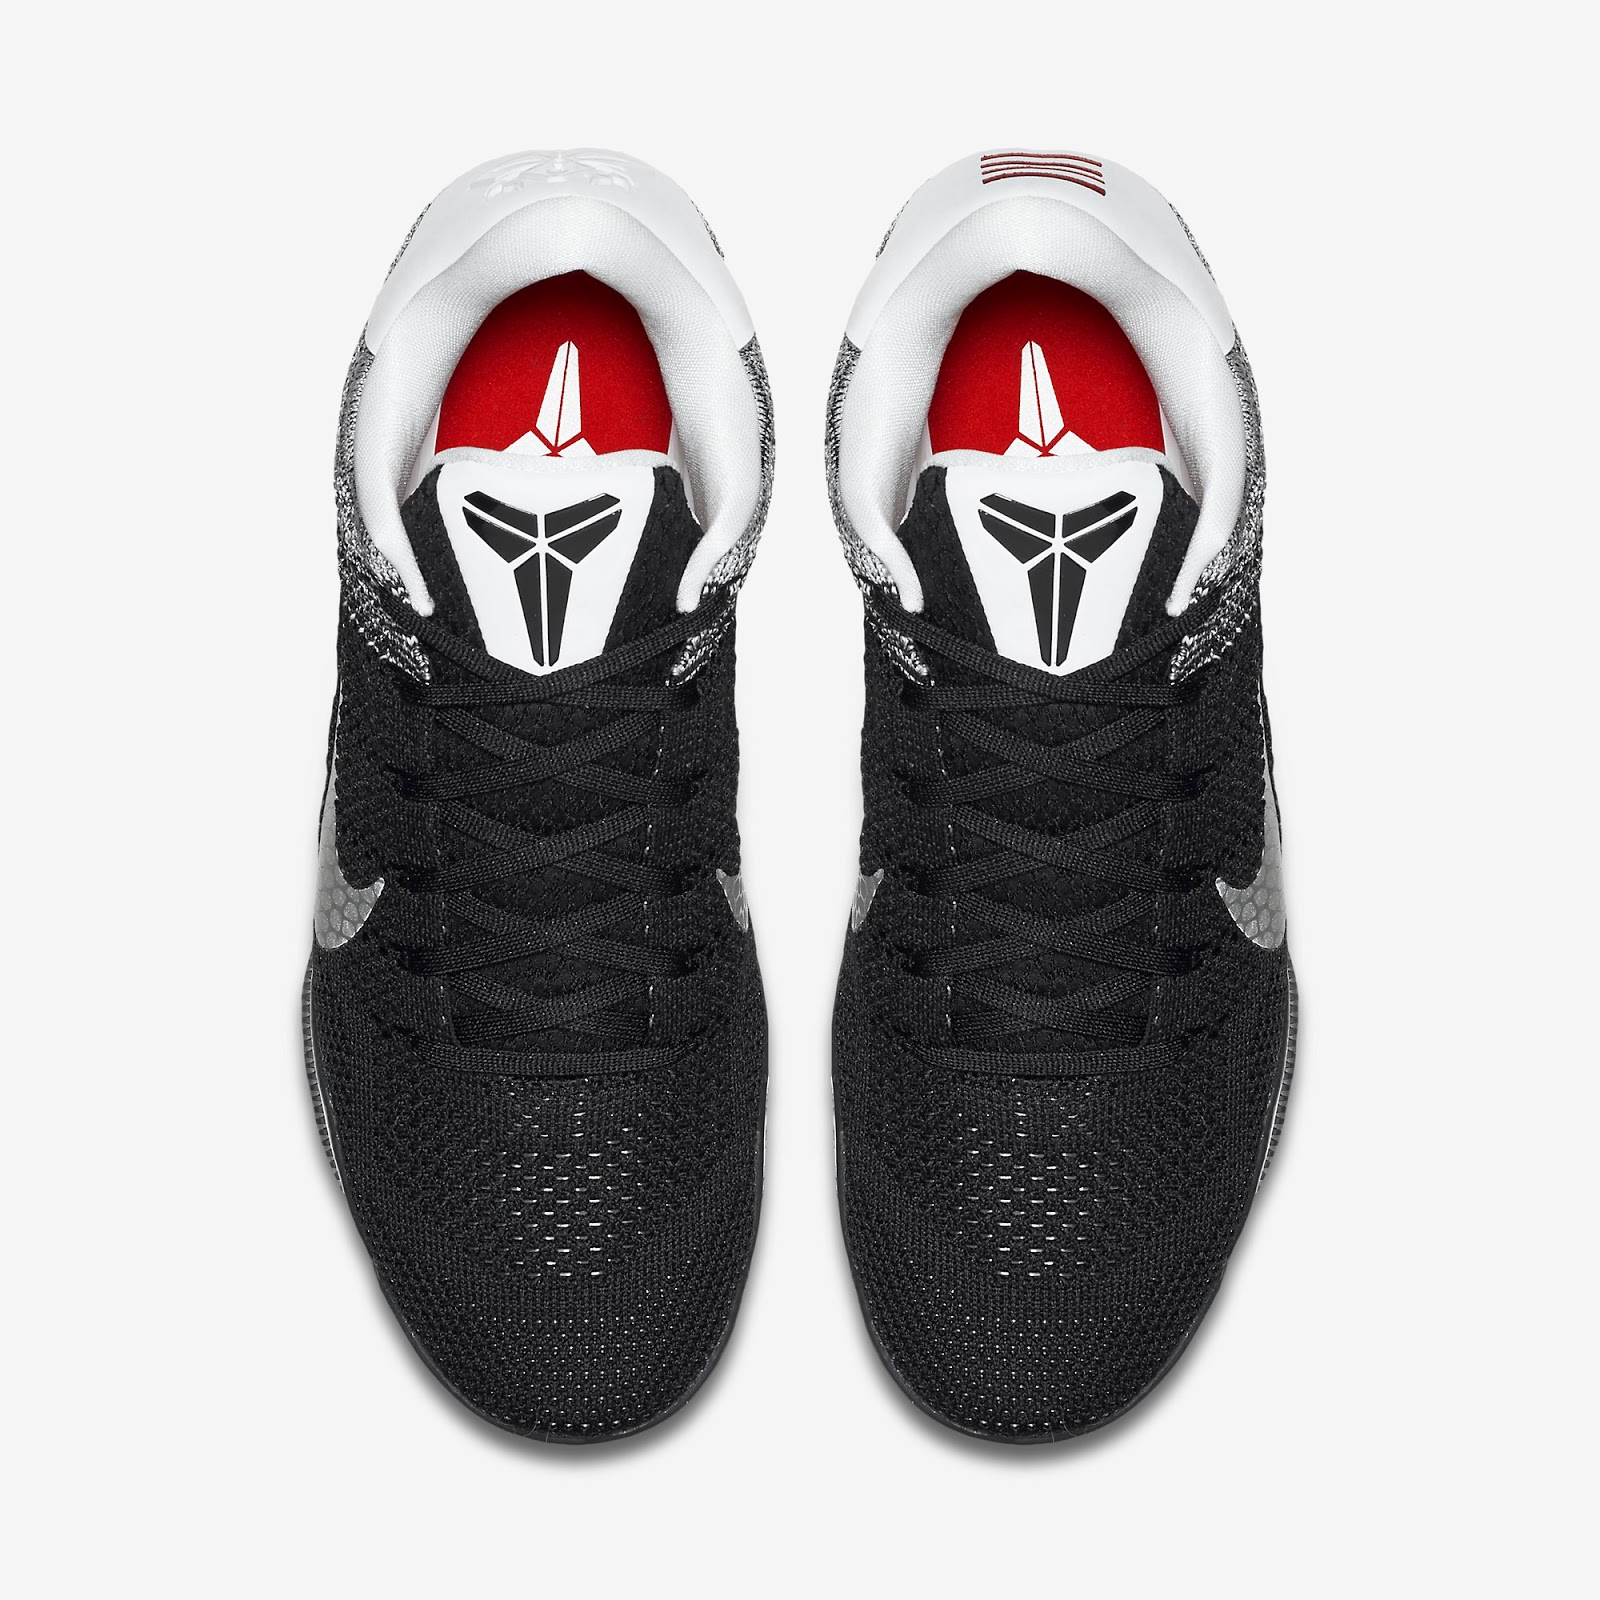 8ed71c37dbec ajordanxi Your  1 Source For Sneaker Release Dates  Nike Kobe 11 ...